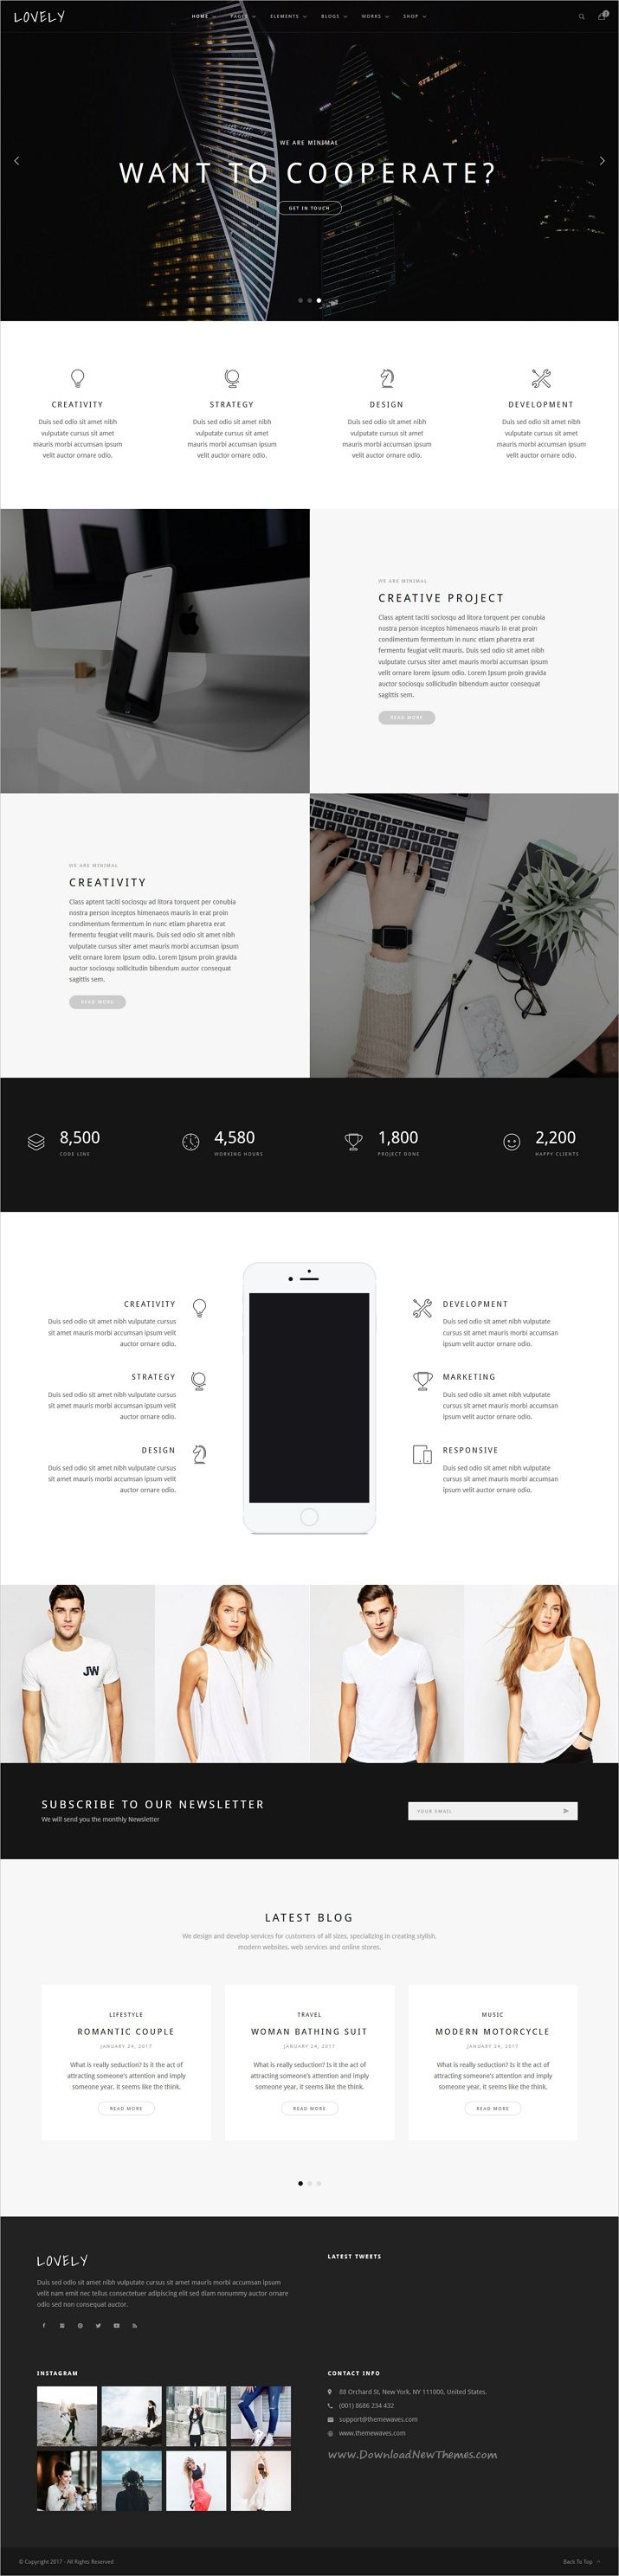 Lovely is carefully designed multipurpose HTML bootstrap template for amazing #minimal #business websites with 18+ stunning homepage layouts download now➩ https://themeforest.net/item/lovely-corporate-creative-multipurpose-html-template/19515847?ref=Datasata